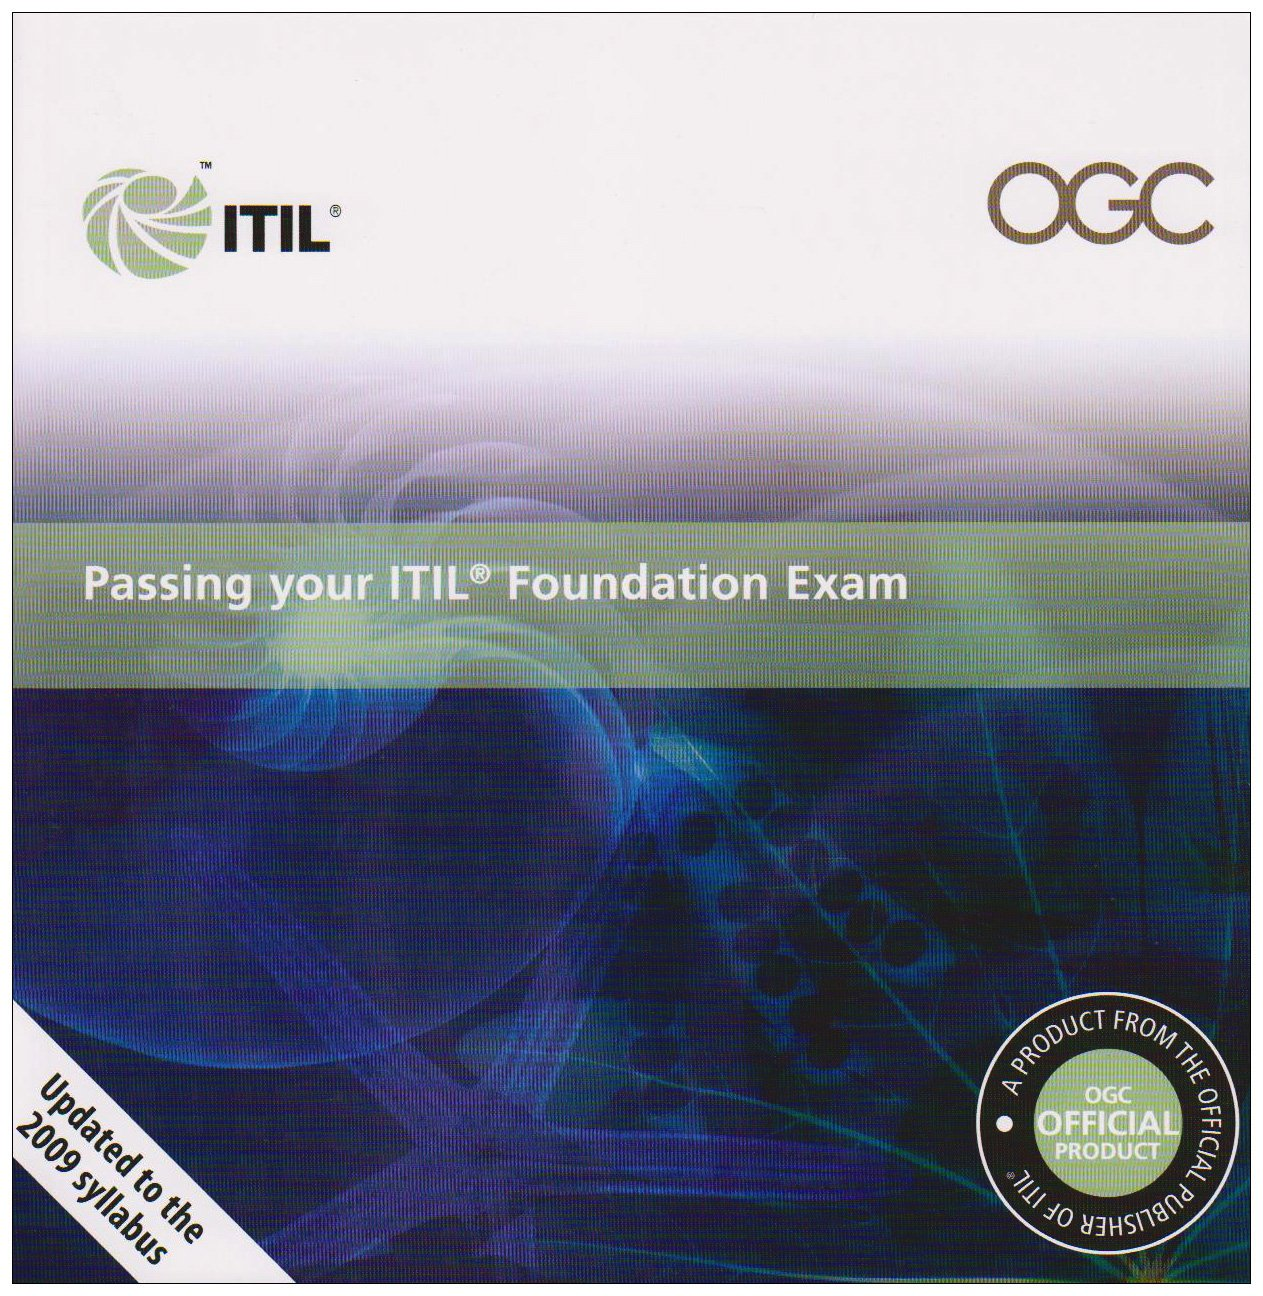 Buy passing your itil foundation exam study aid from the official buy passing your itil foundation exam study aid from the official publisher of itil book online at low prices in india passing your itil foundation exam 1betcityfo Gallery